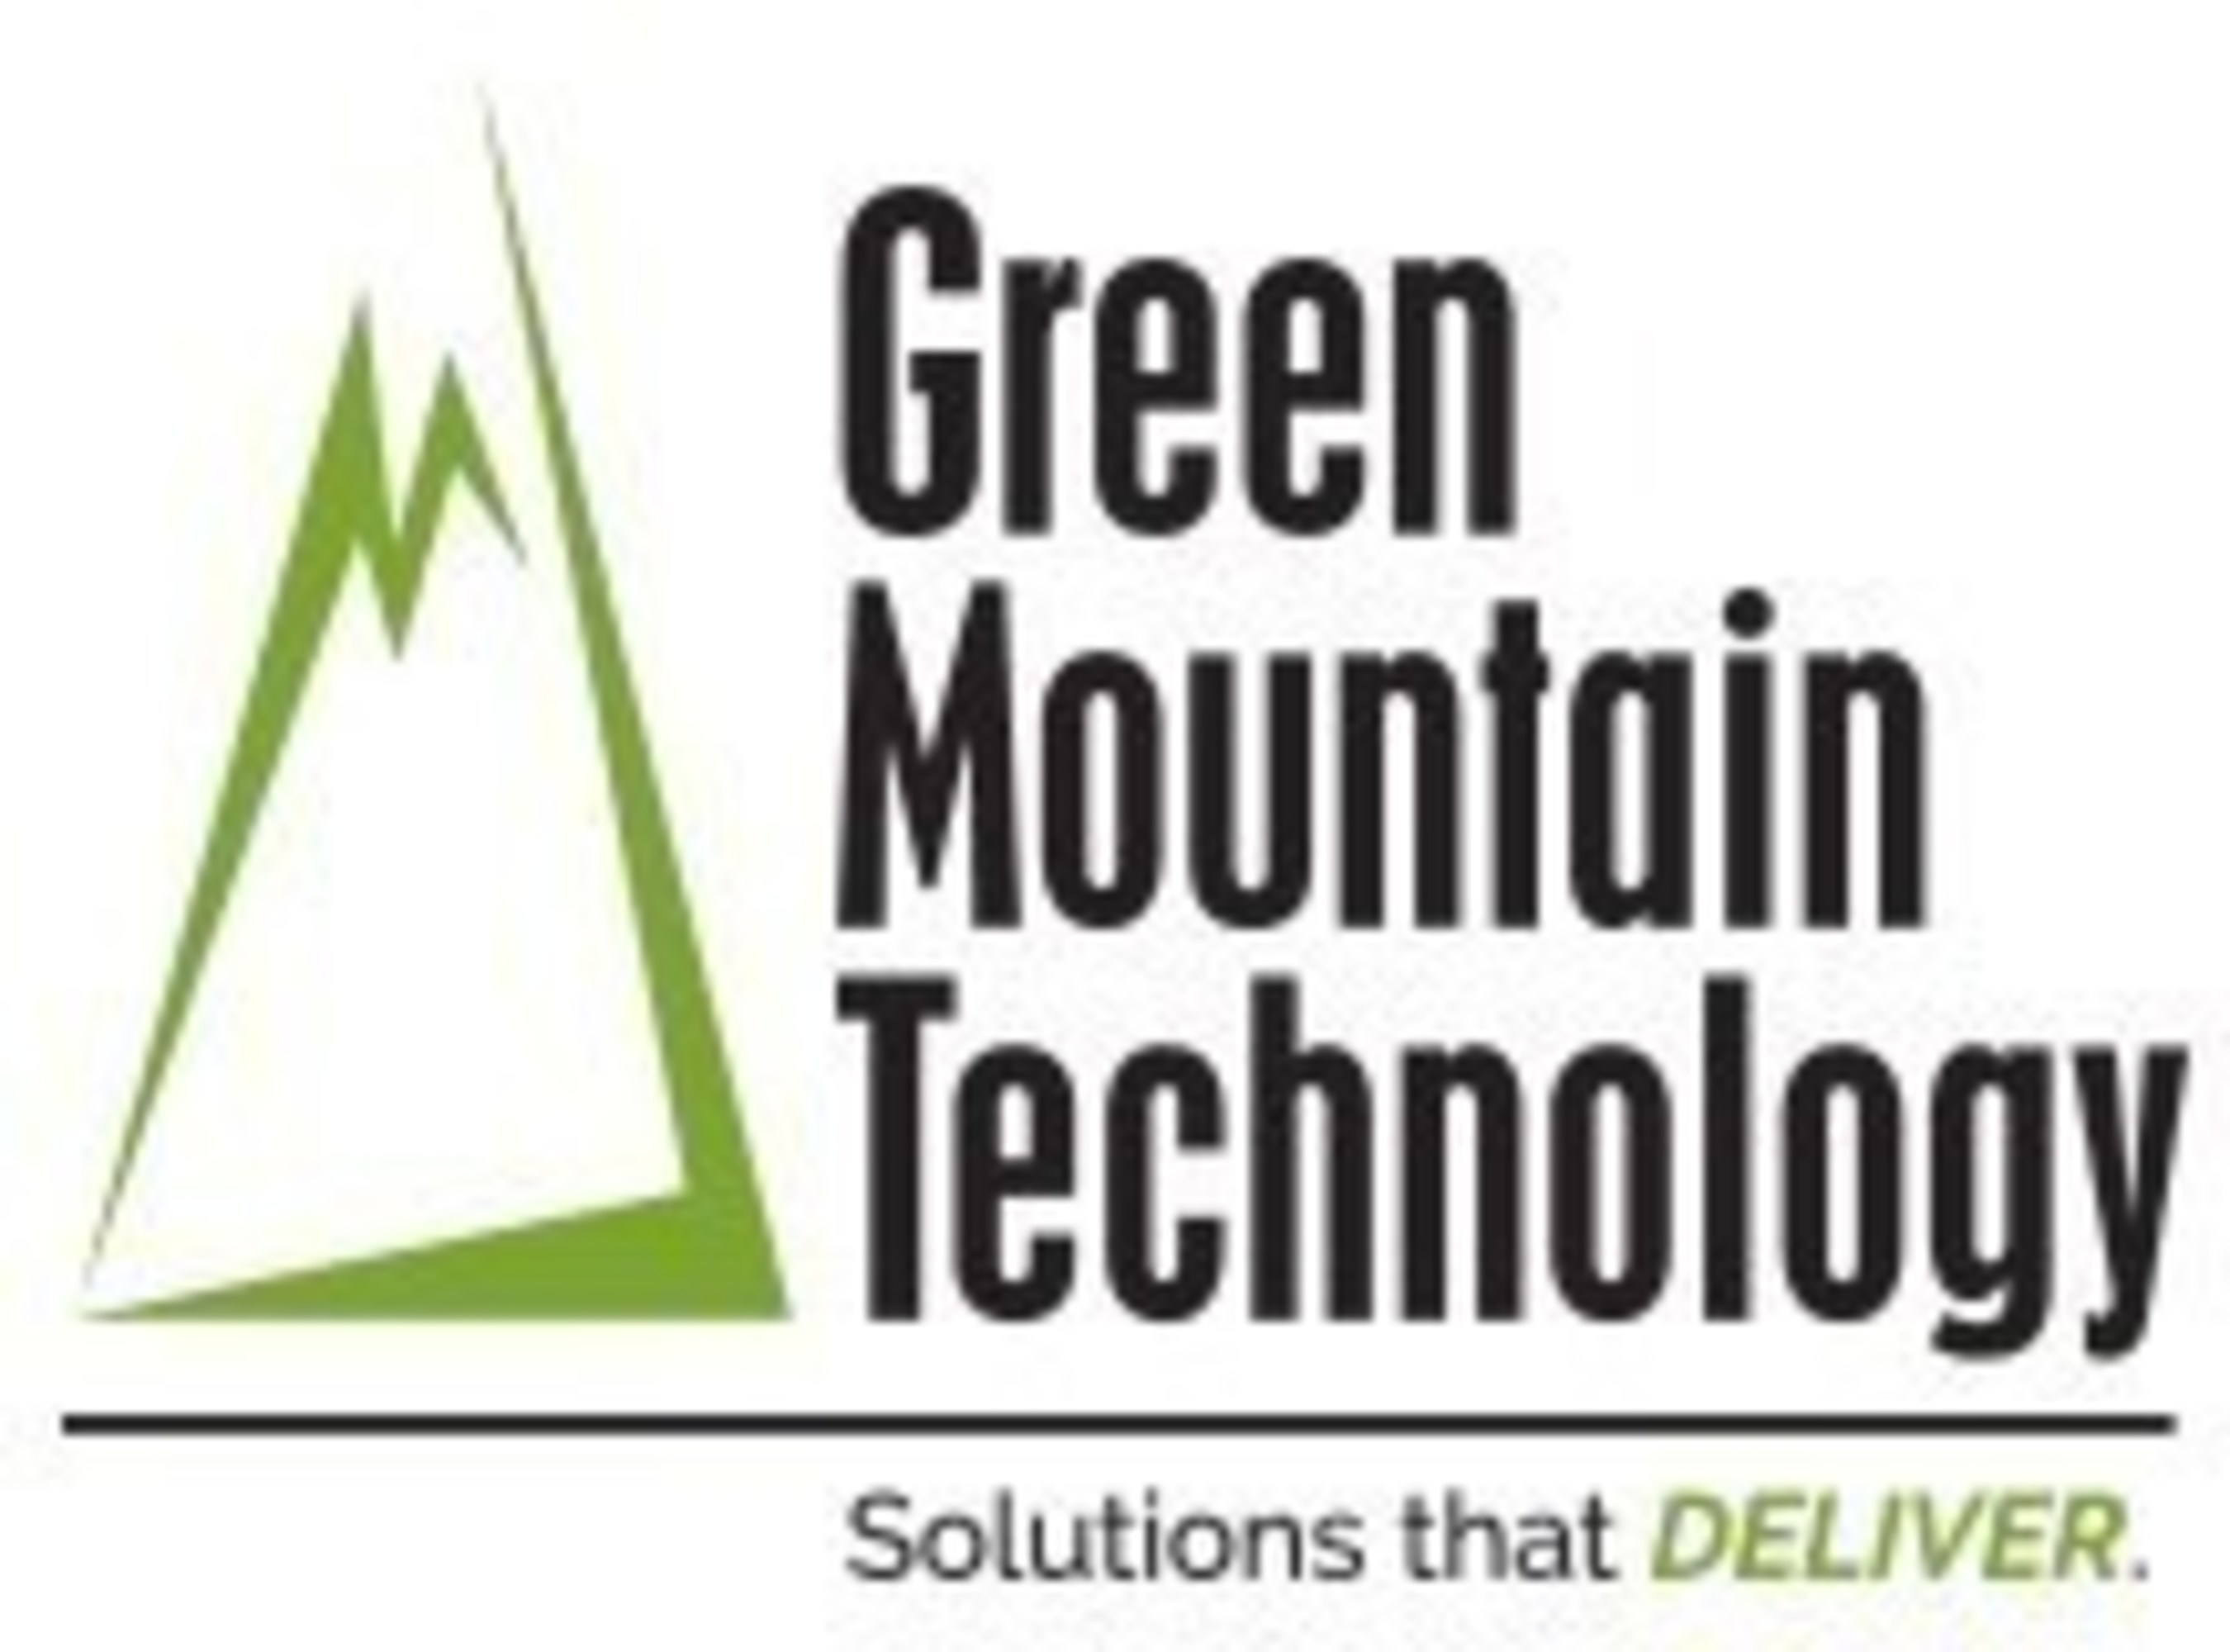 Green Mountain Technology Releases First Benchmark Research Report